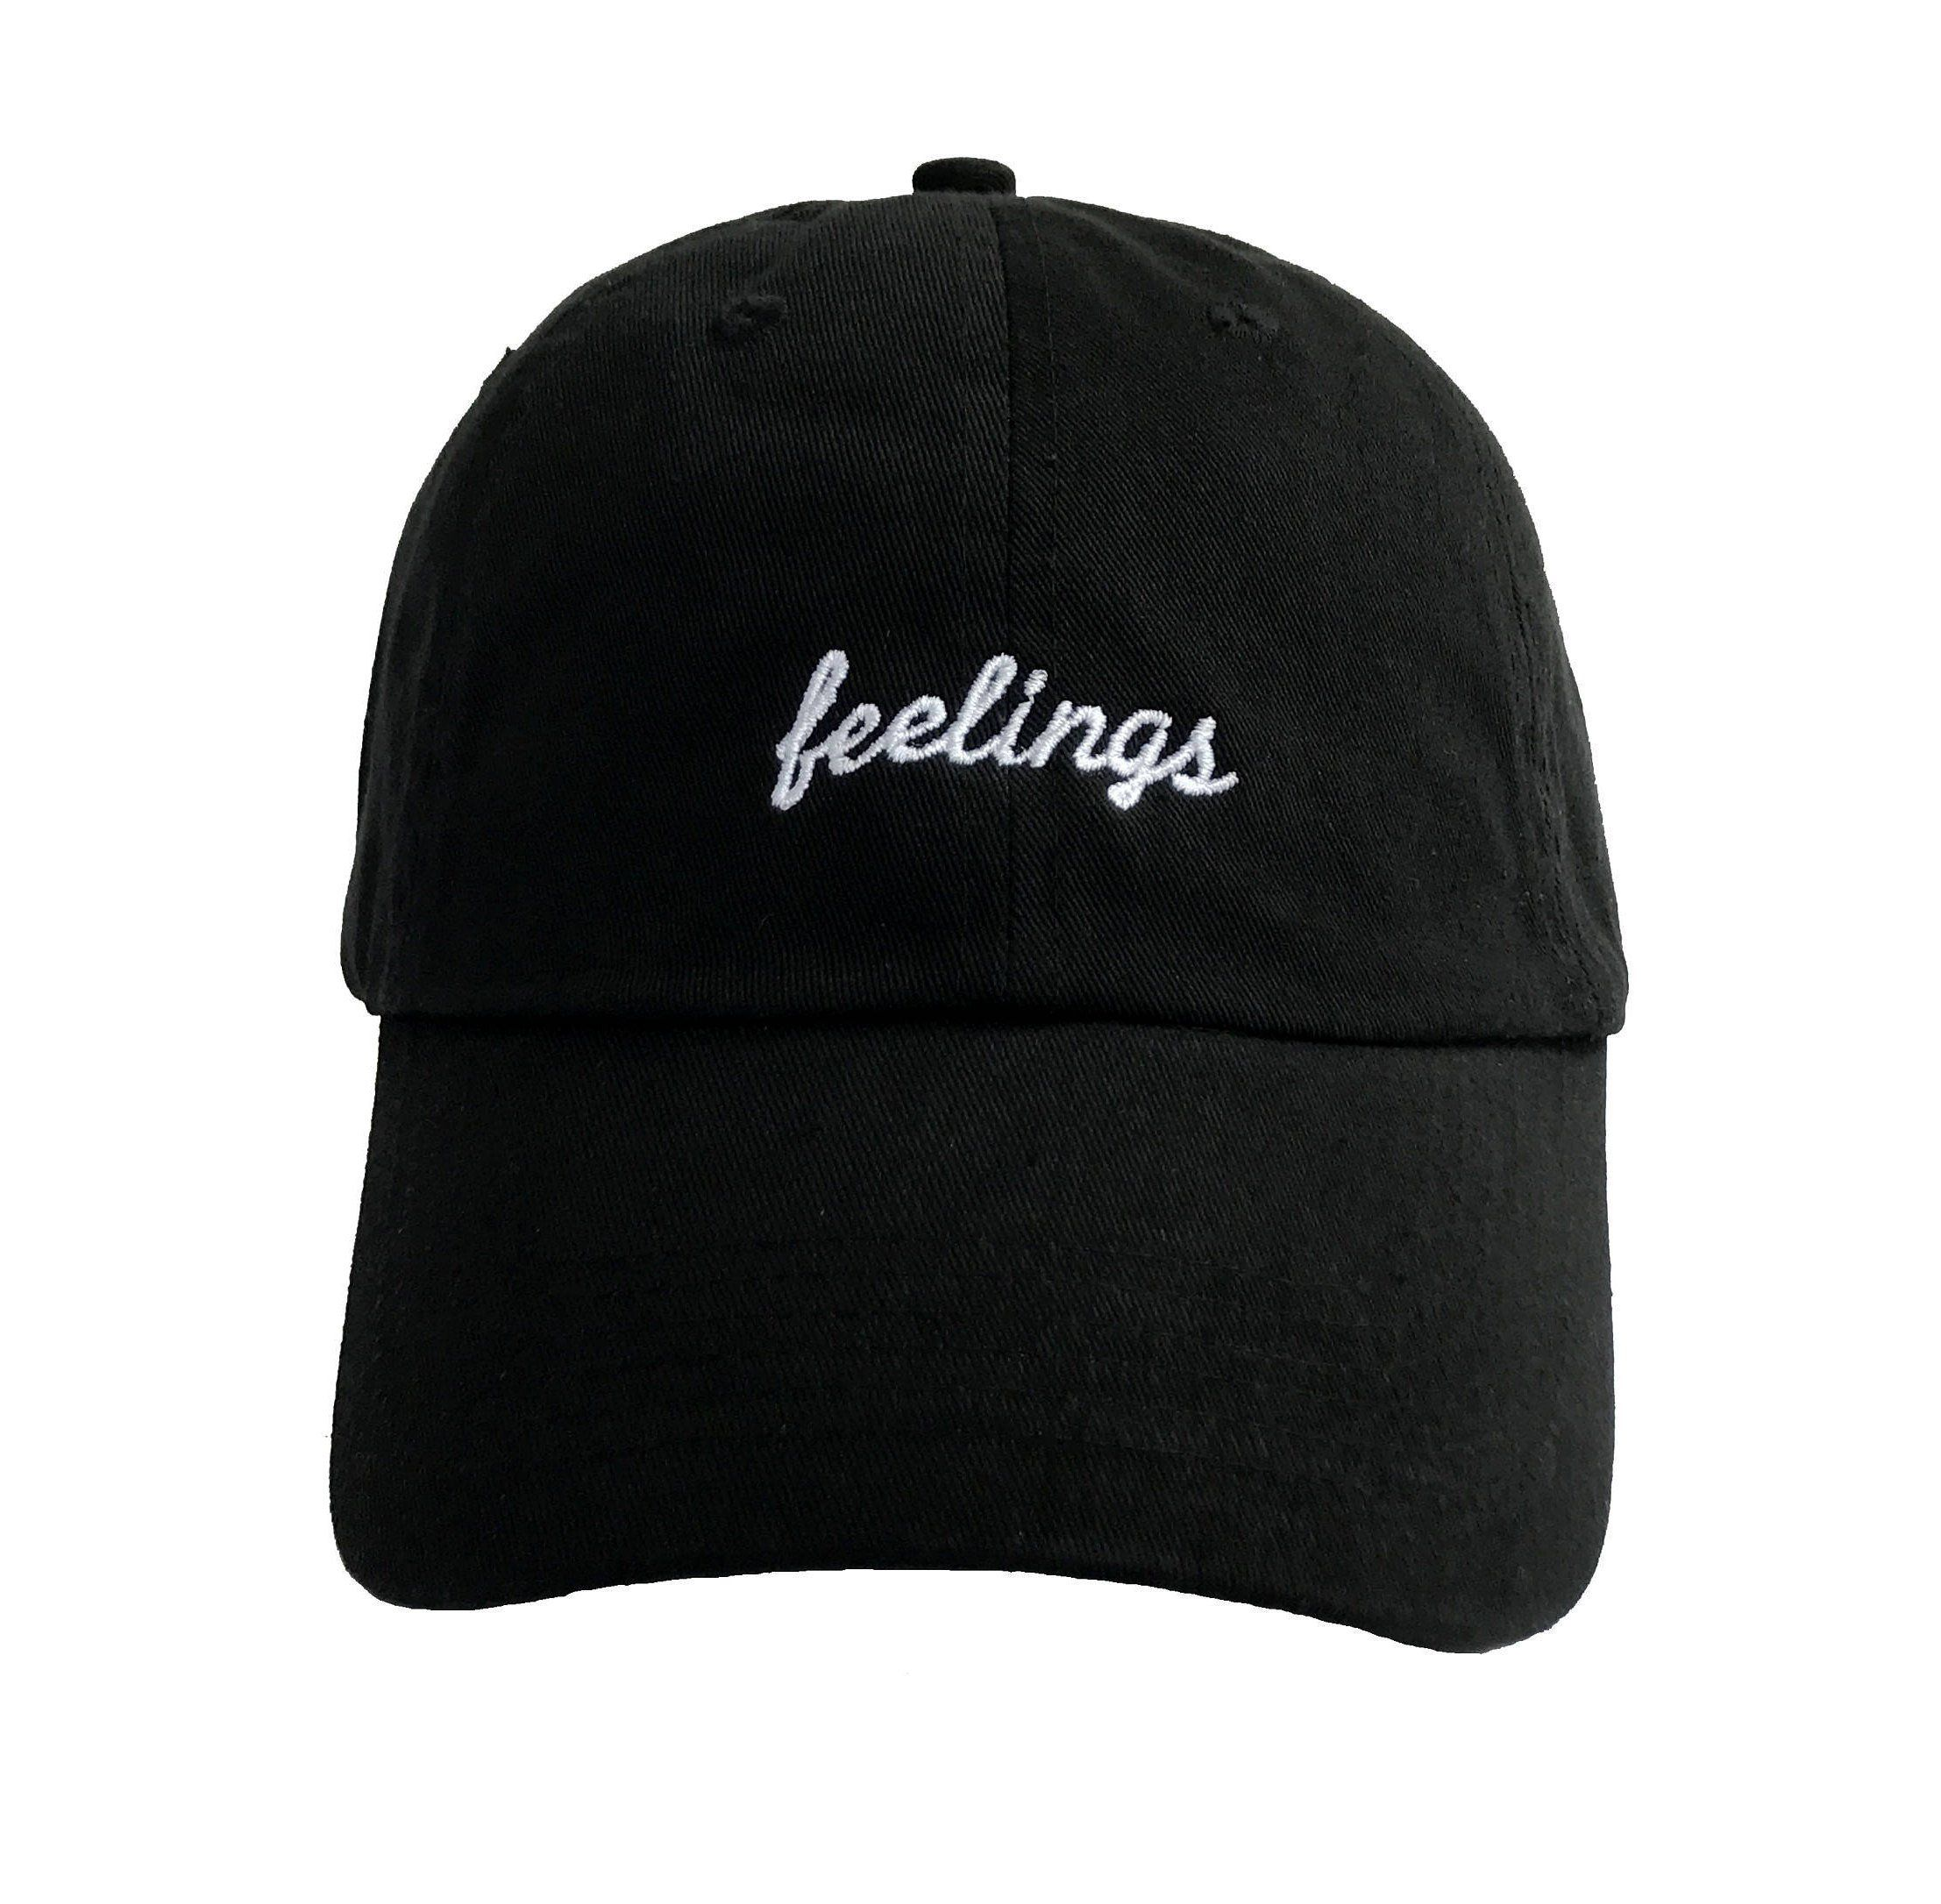 357fa3633 Feelings Dad Hat, Custom Dad Hats, Embroidered Baseball Cap, Unisex Low  Profile Adjustable